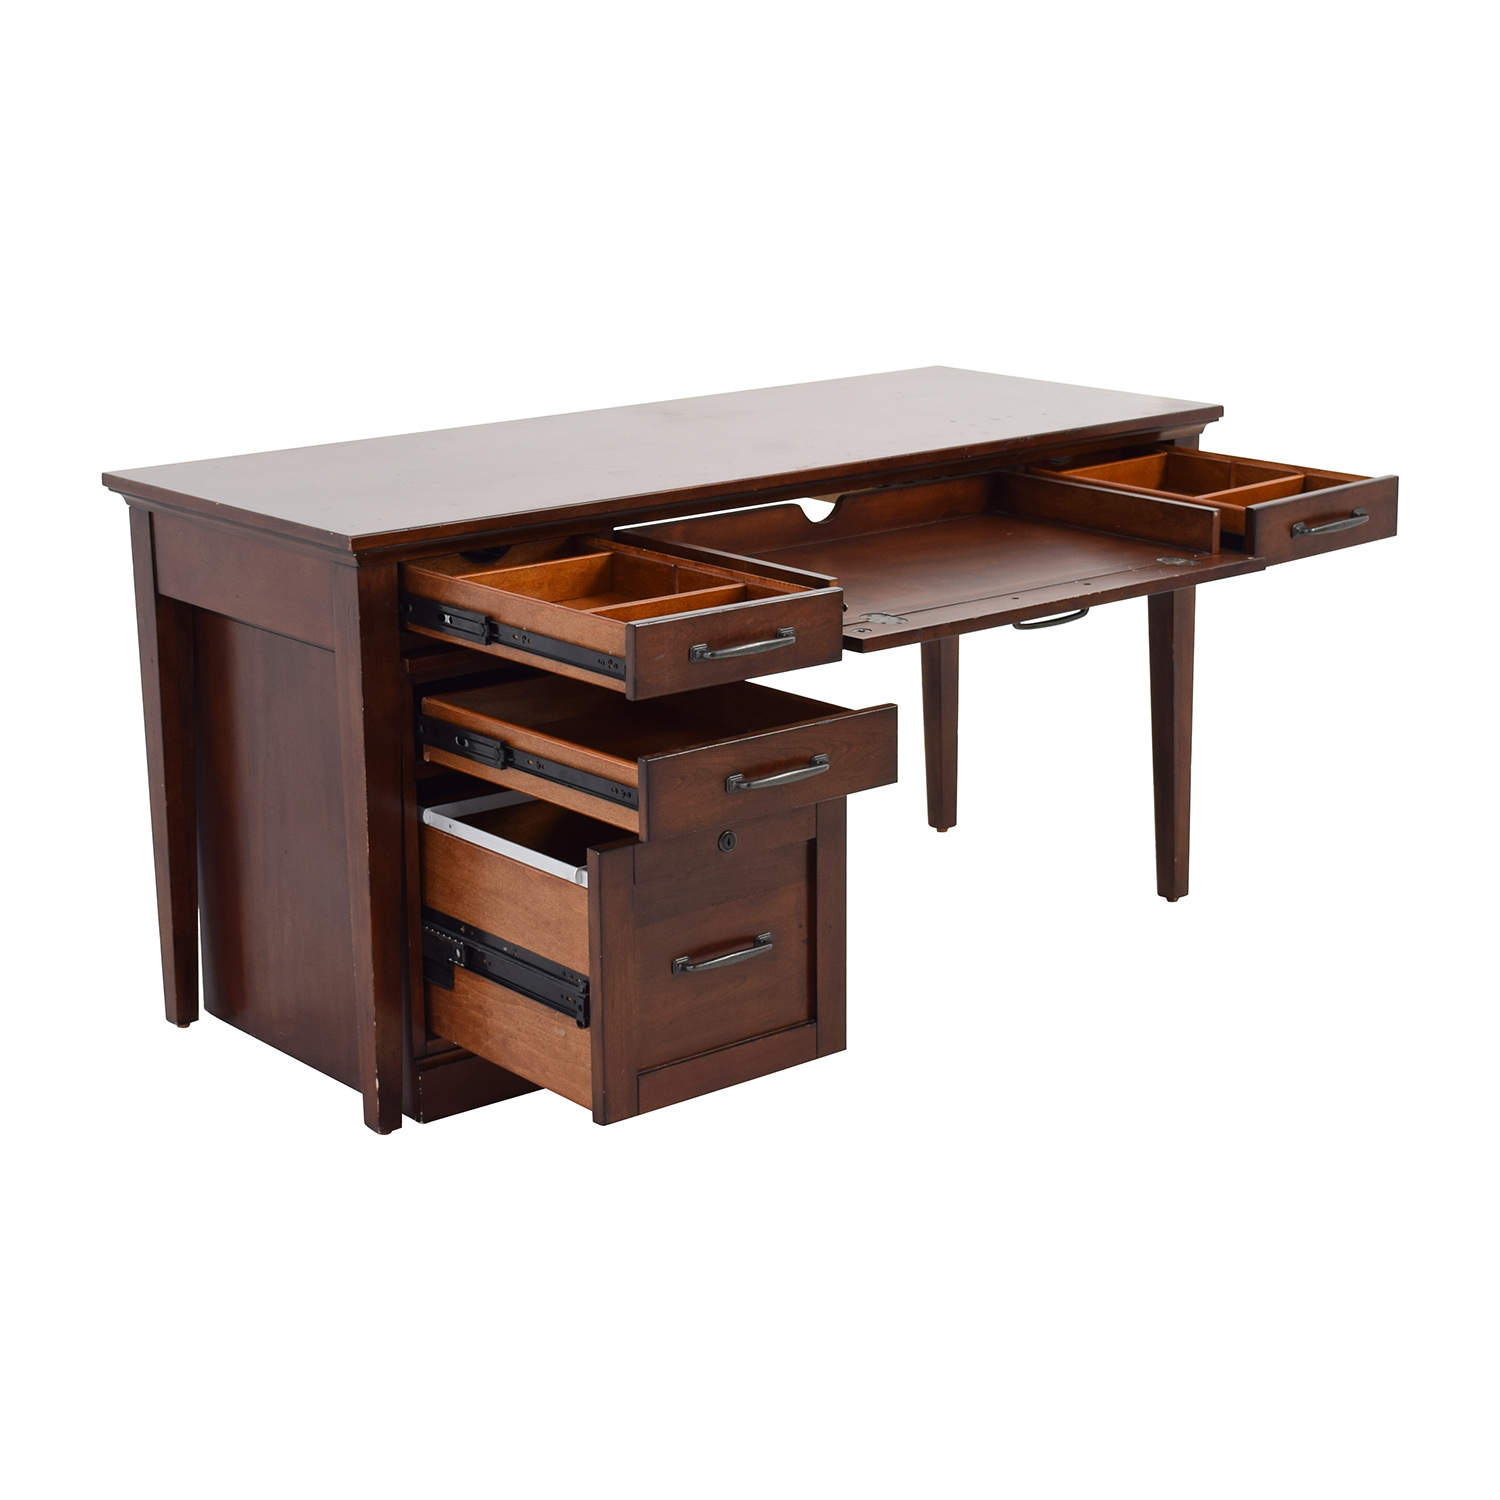 82 Off Nebraska Furniture Mart Nebraska Furniture Mart Desk And Rolling File Cabinet Tables